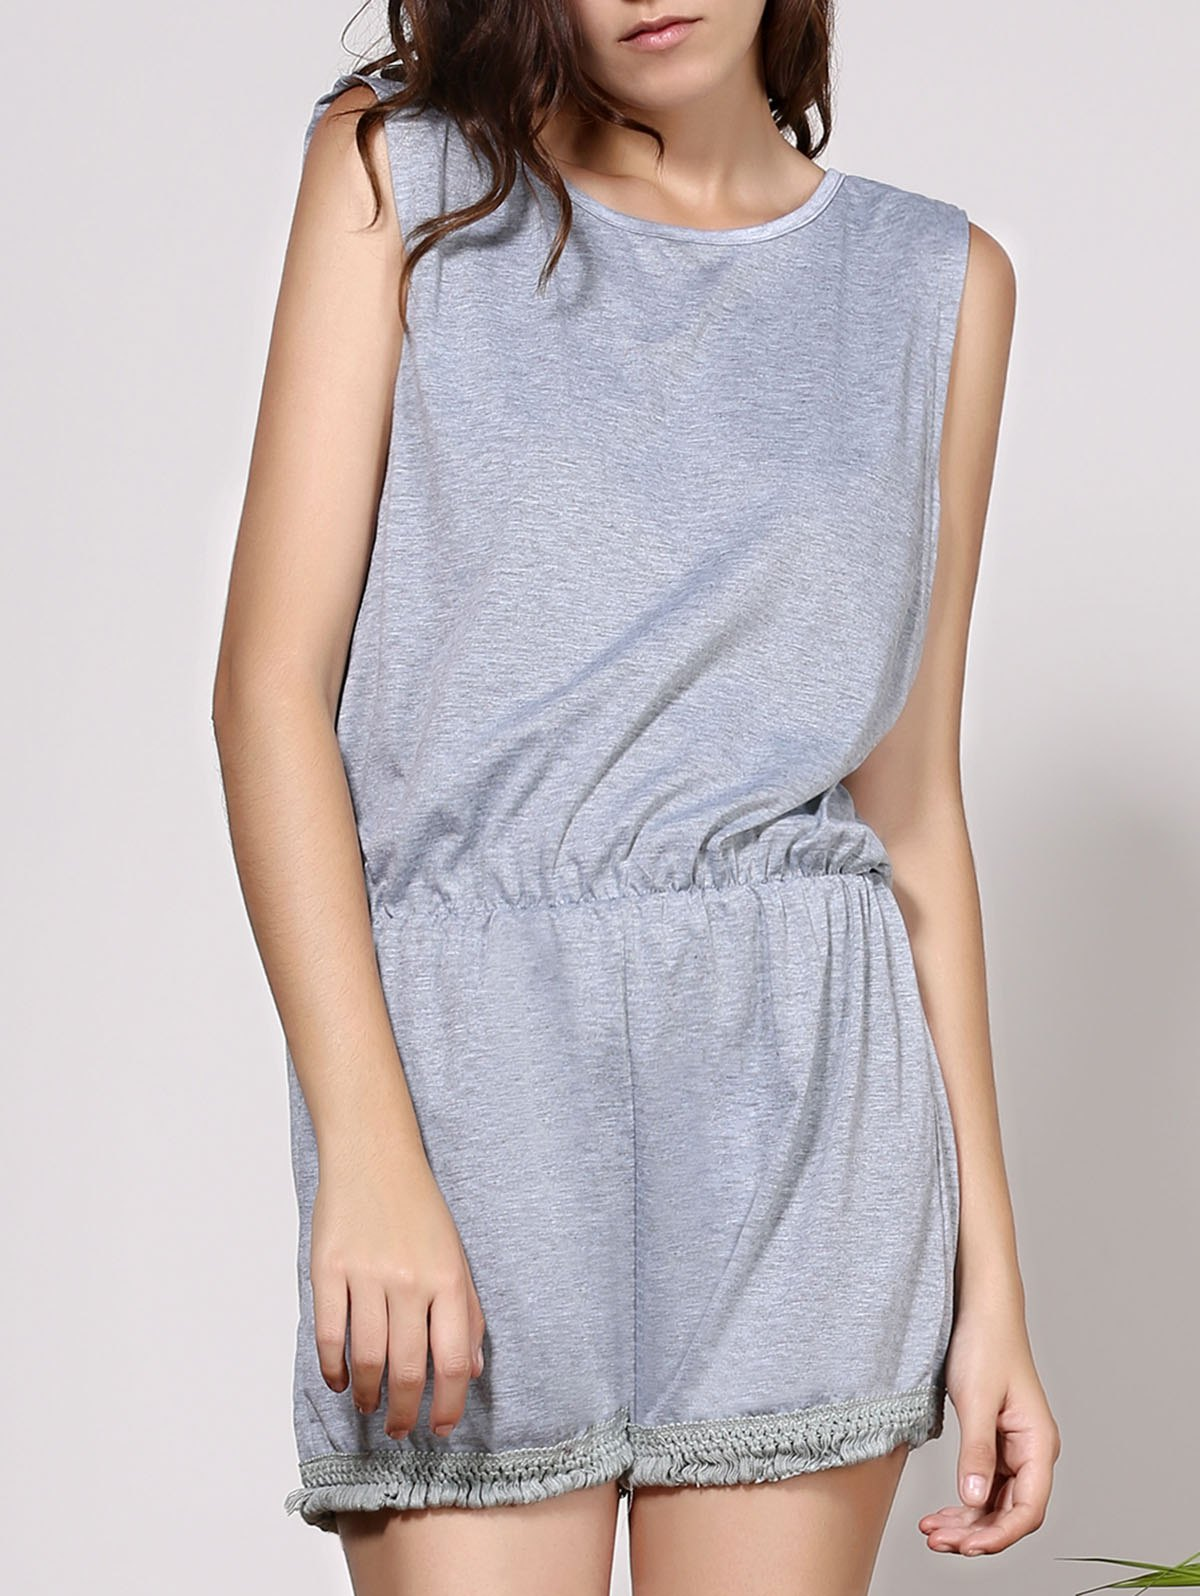 Tassels Sleeveless Backless Romper